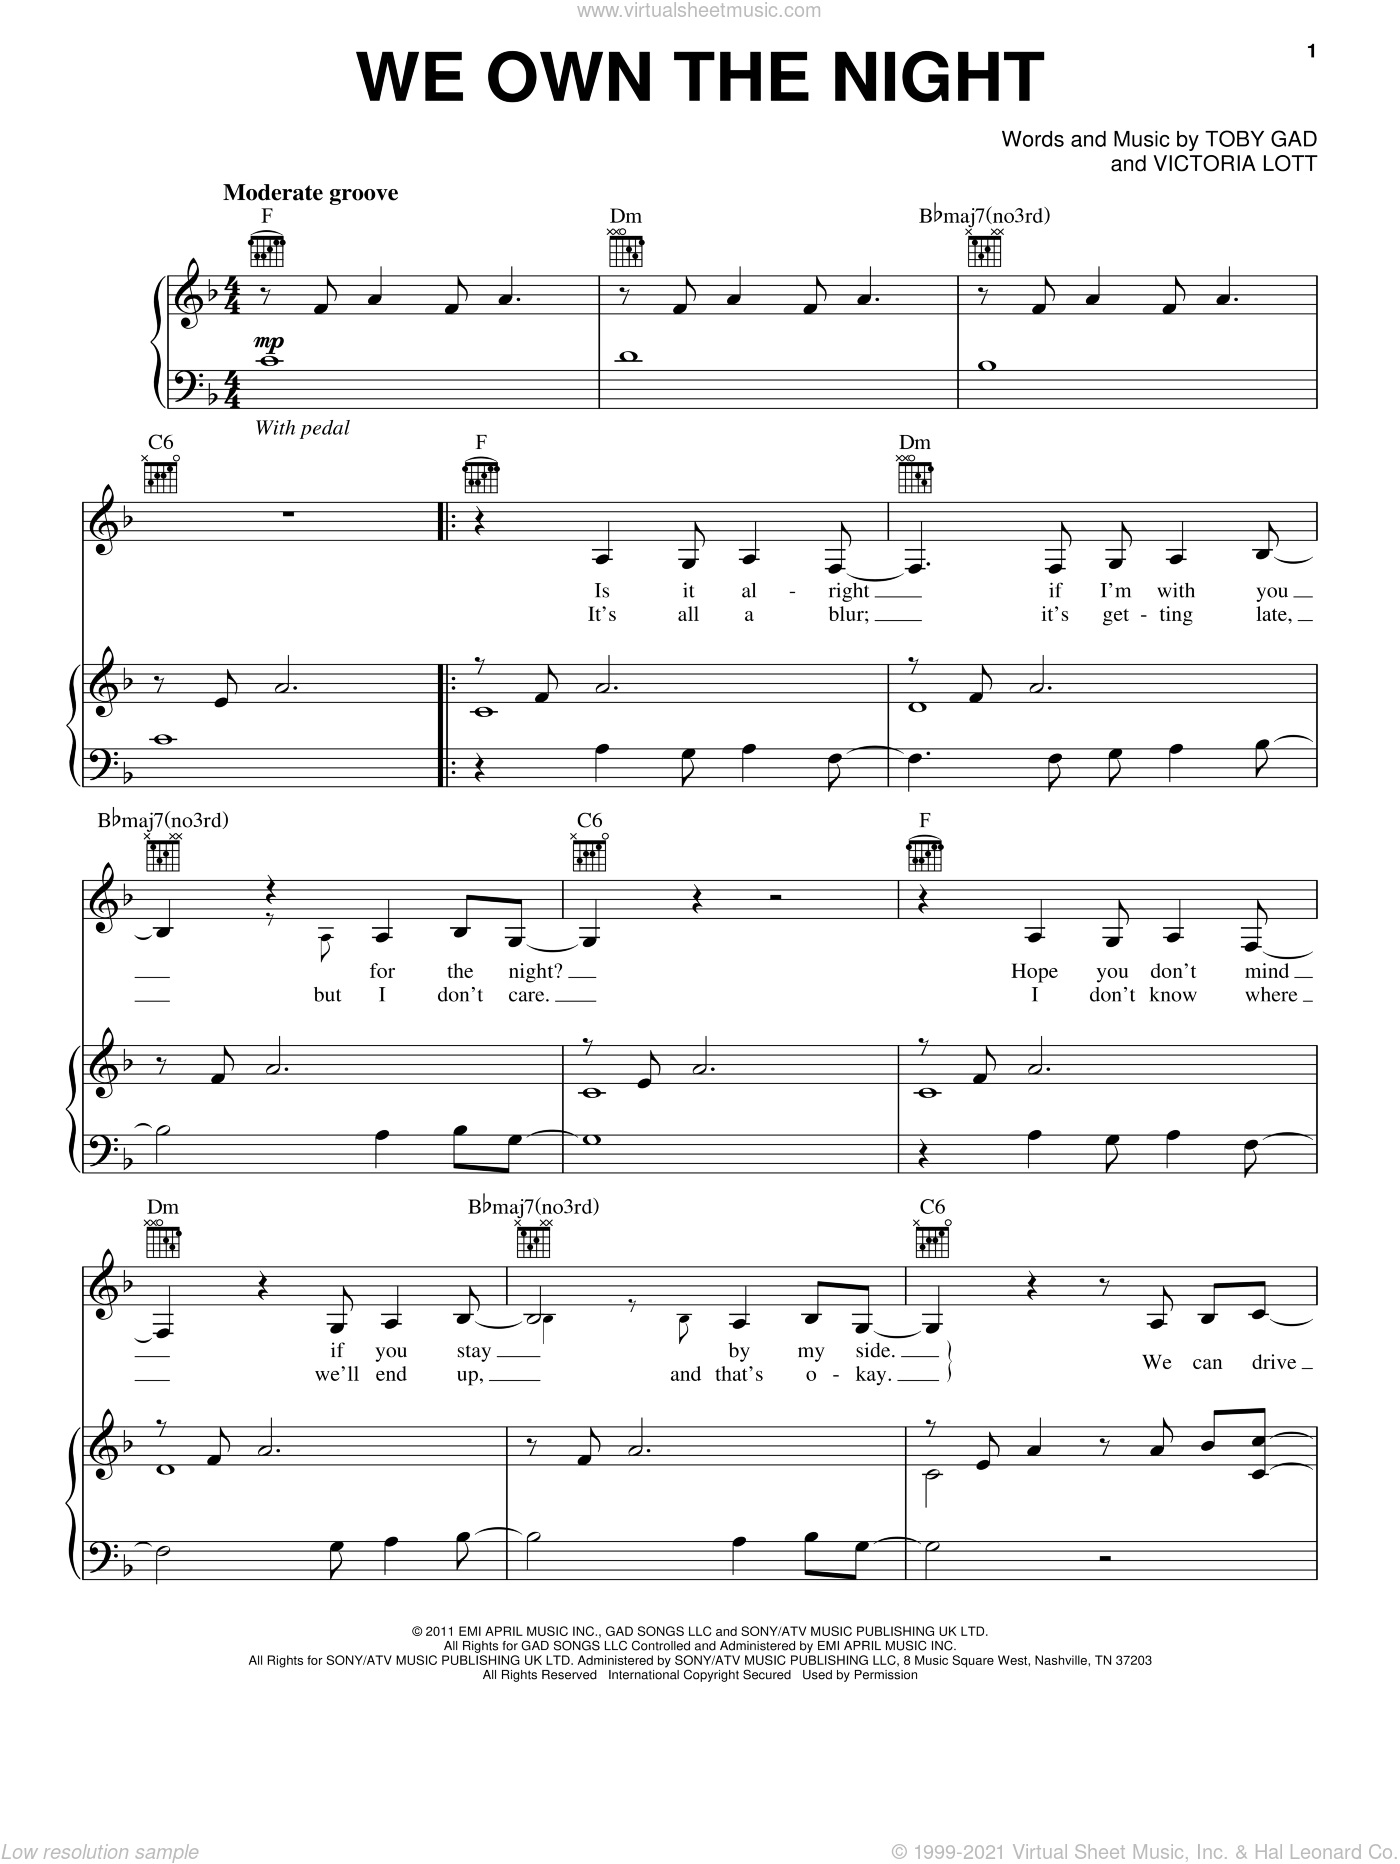 We Own The Night sheet music for voice, piano or guitar by Victoria Lott